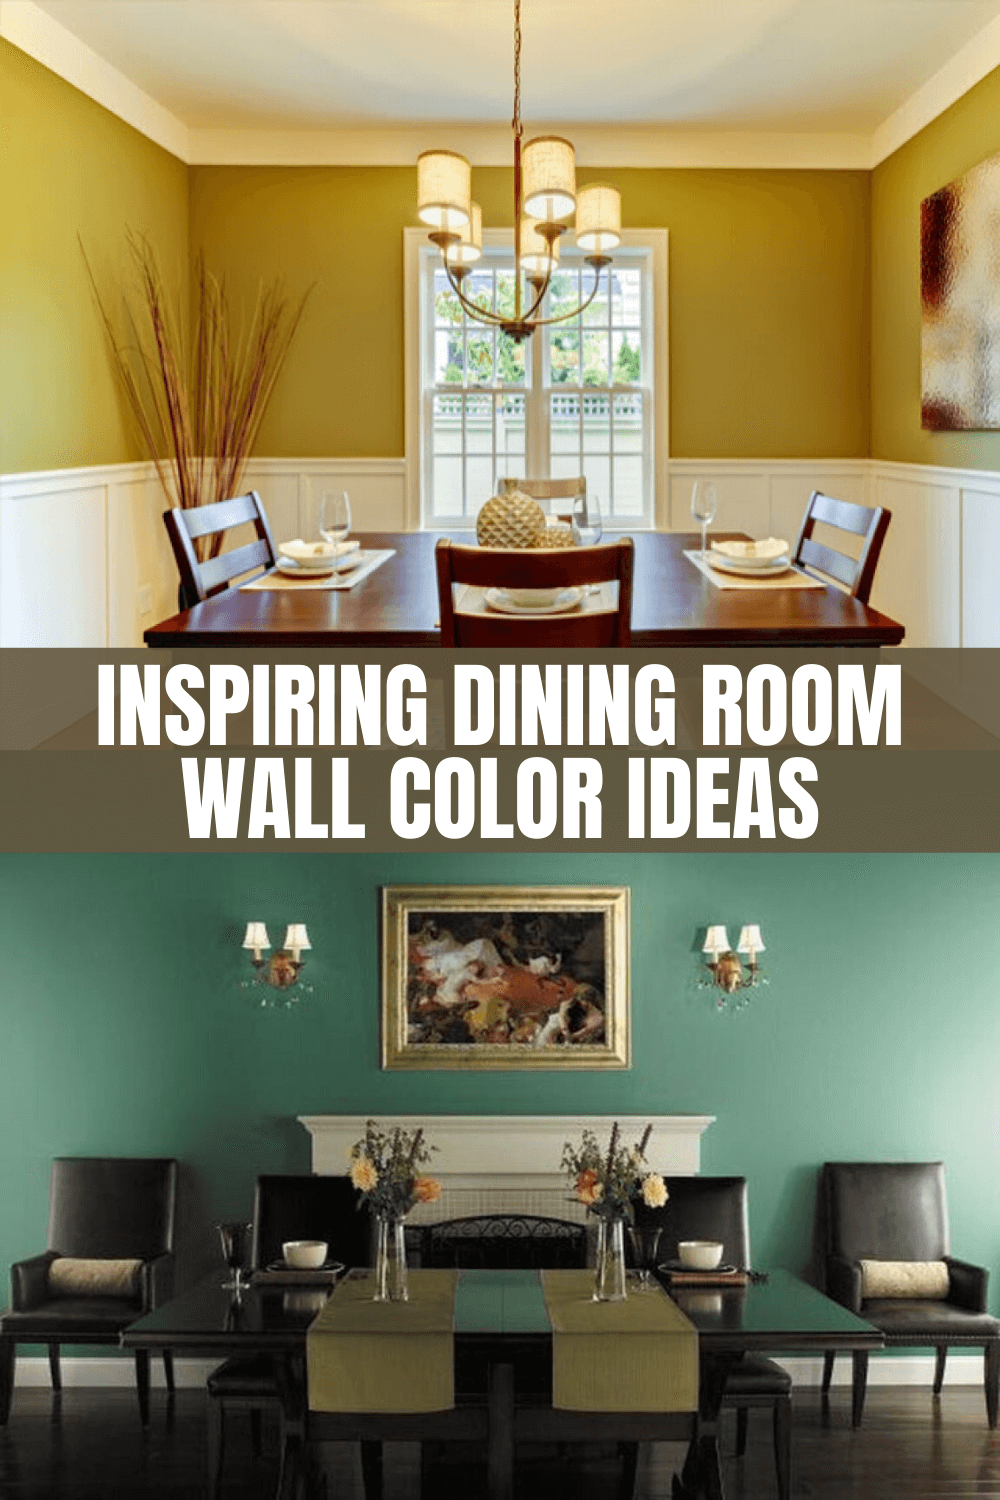 INSPIRING DINING ROOM WALL COLOR IDEAS